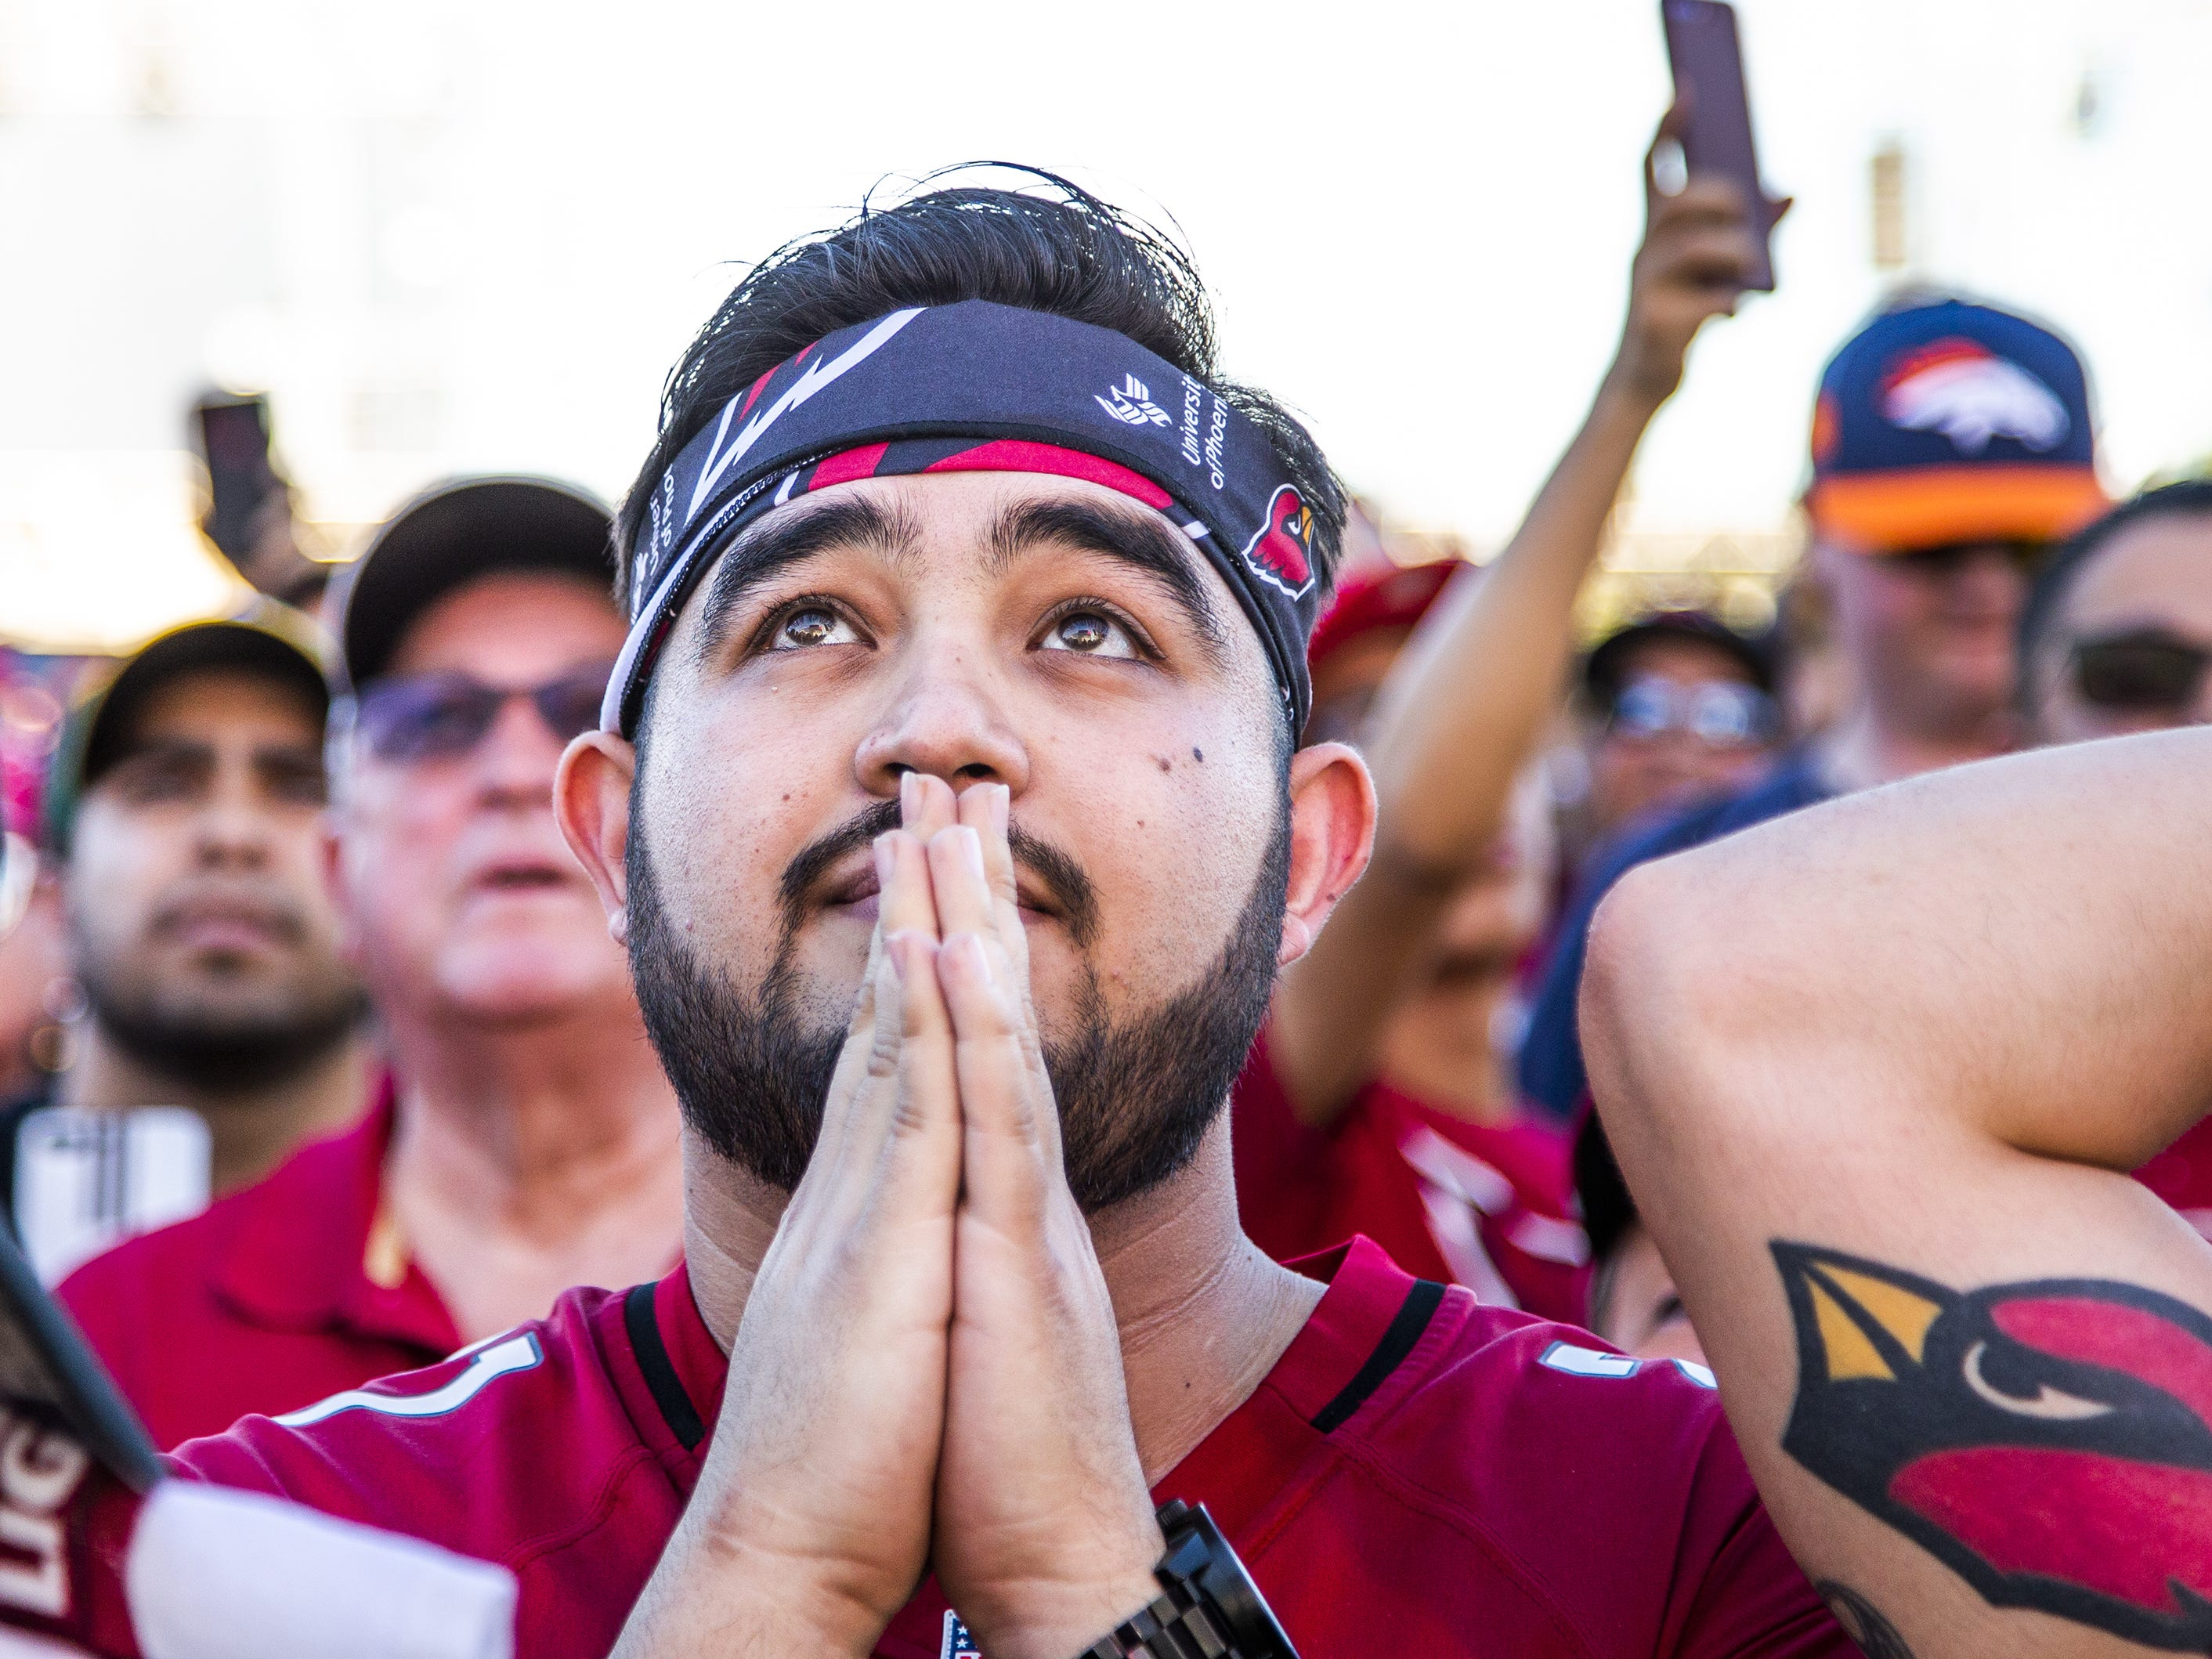 Jesus Cano, 28, Phoenix, waits for the Arizona Cardinals to make their first pick in the NFL Draft during a draft party on the Great Lawn outside State Farm Stadium, Thursday, April 25, 2019.